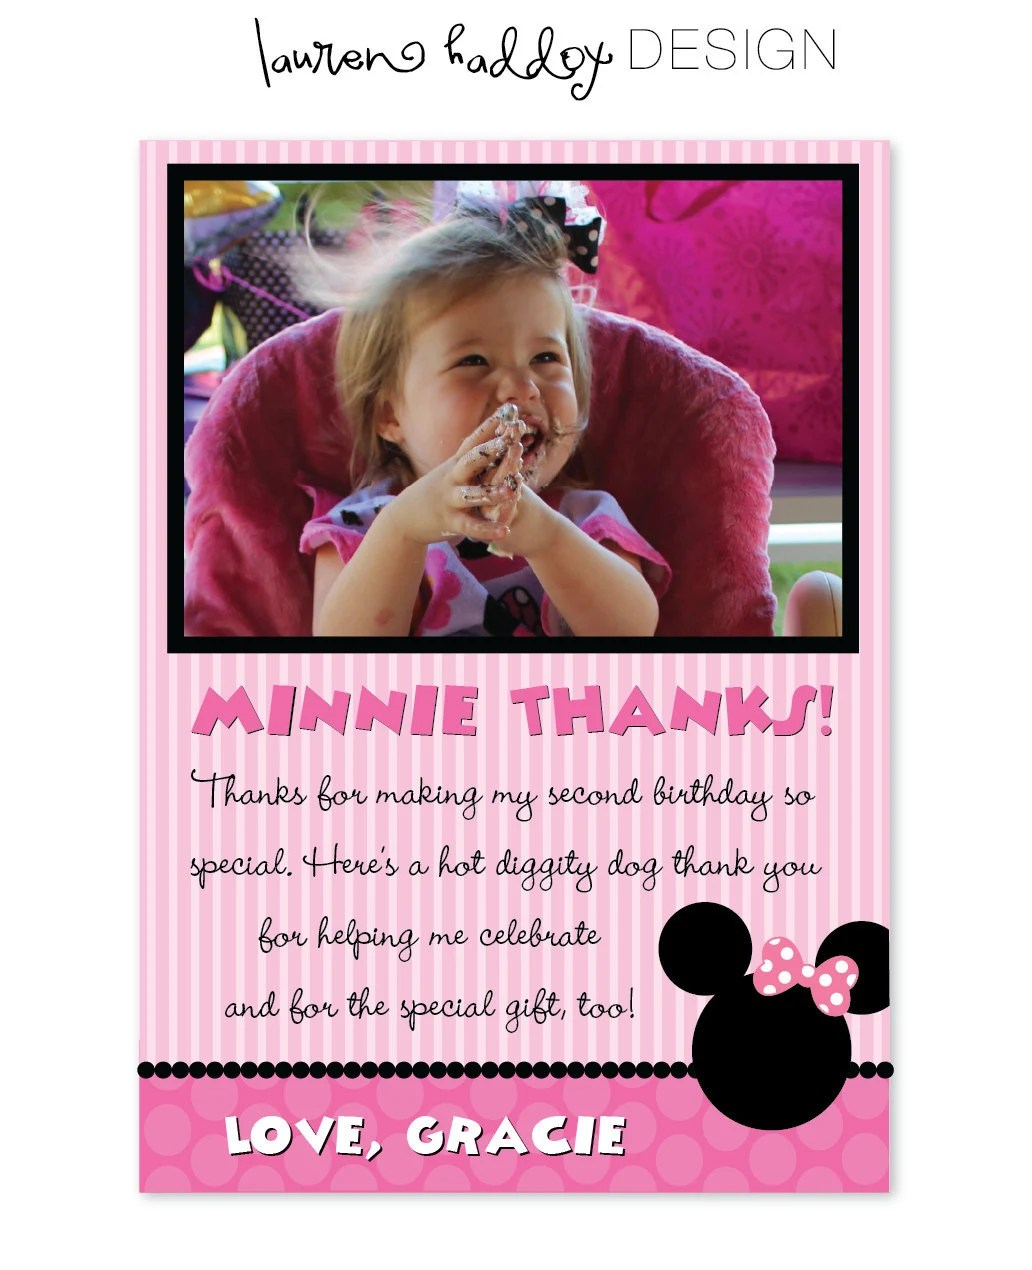 Poster 20x30 Diy Minnie Mouse Photo Thank You Cards By Laurenhaddoxdesign